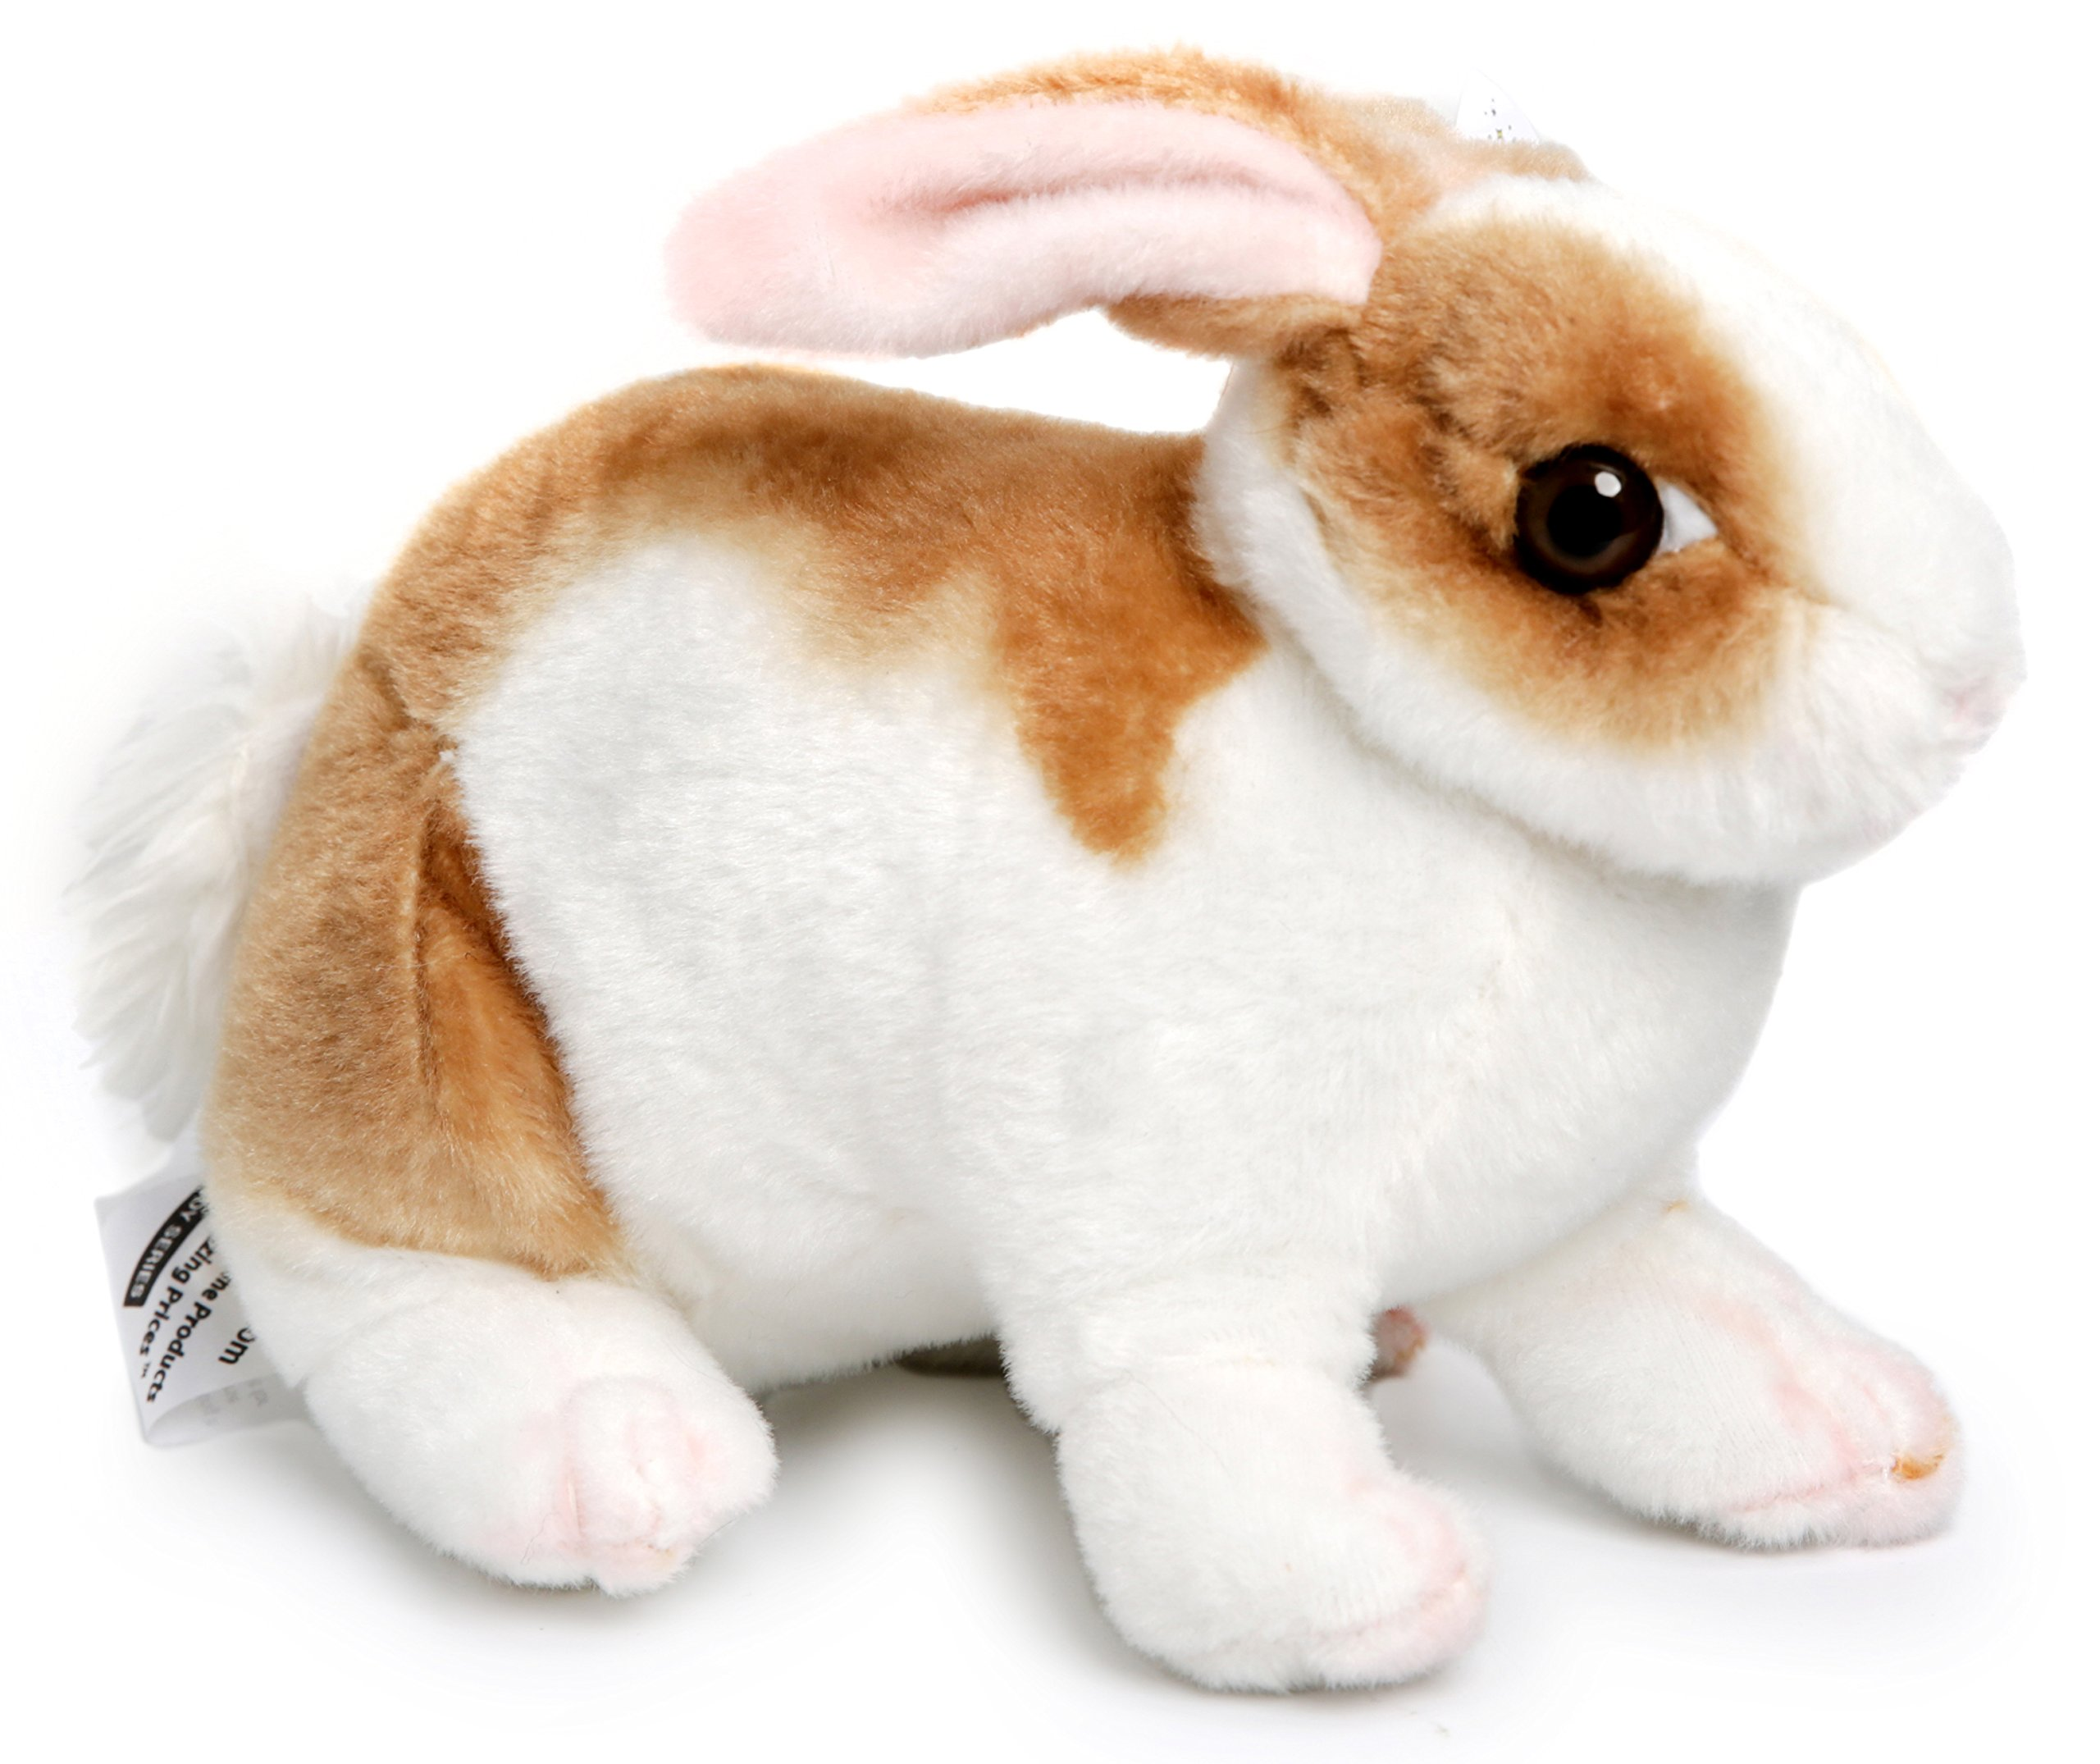 VIAHART Ridley The Rabbit | 11 Inch Realistic Stuffed Animal Plush Bunny | by Tiger Tale Toys by VIAHART